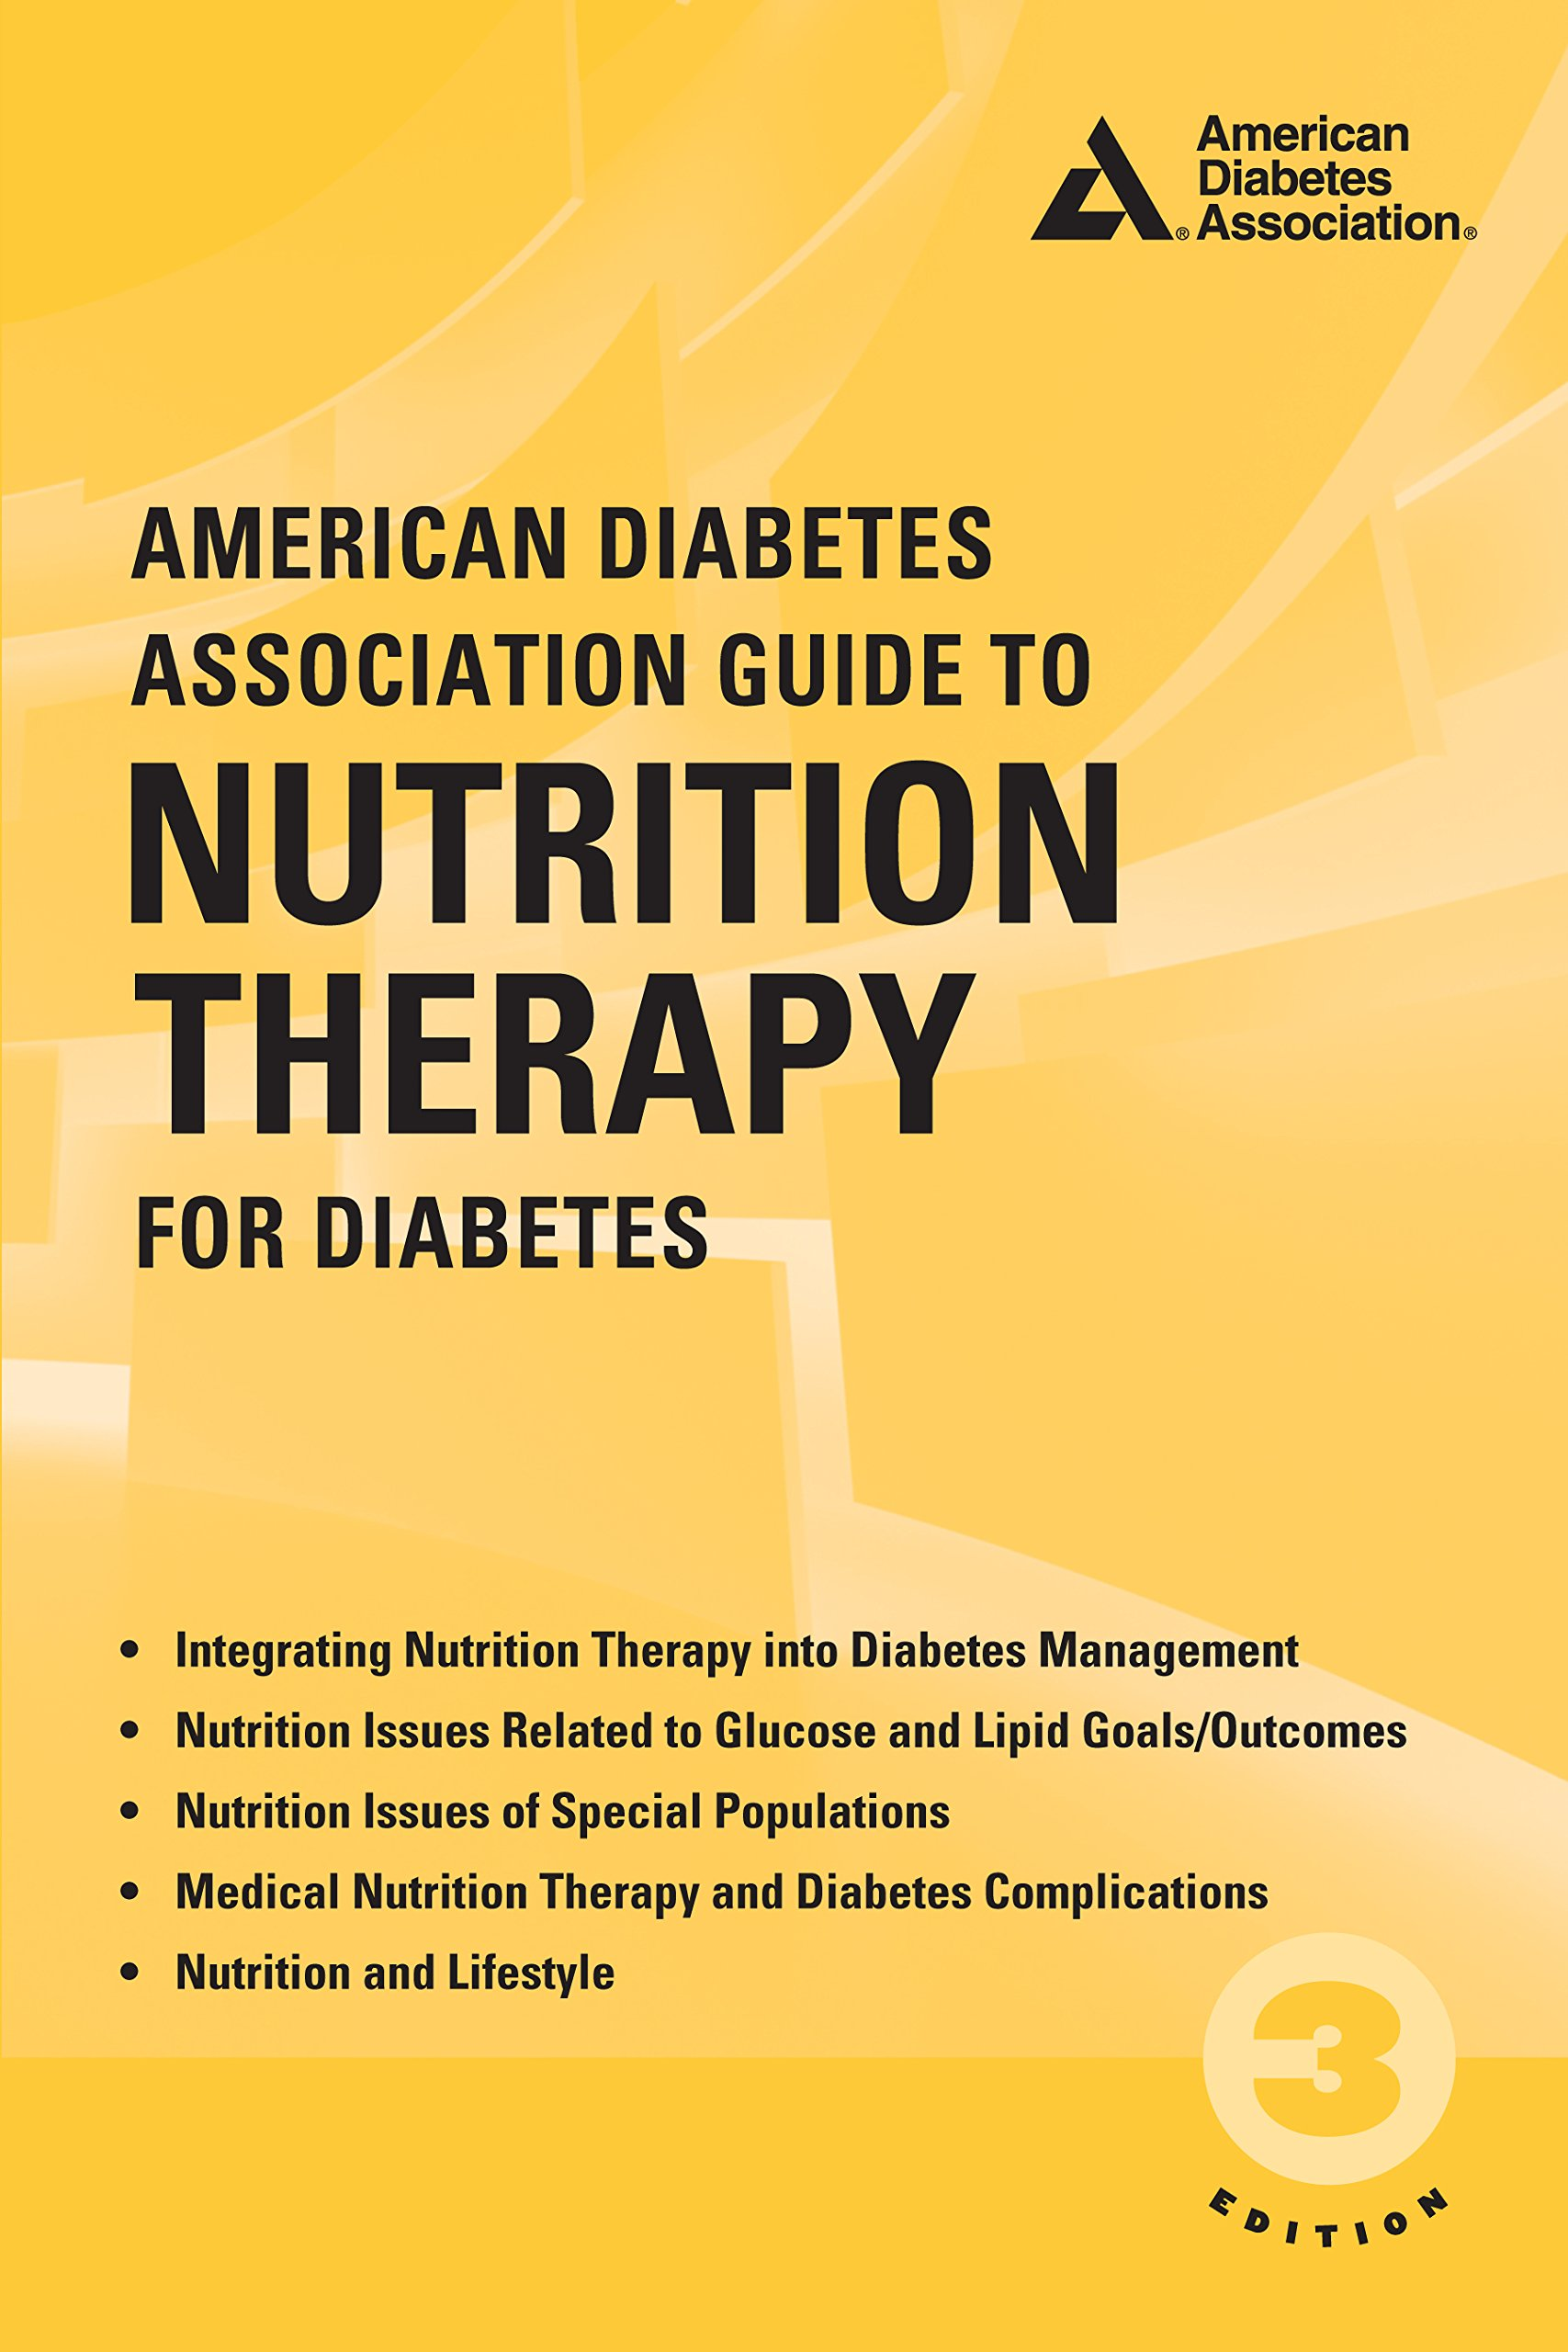 American Diabetes Association Nutrition Therapy product image